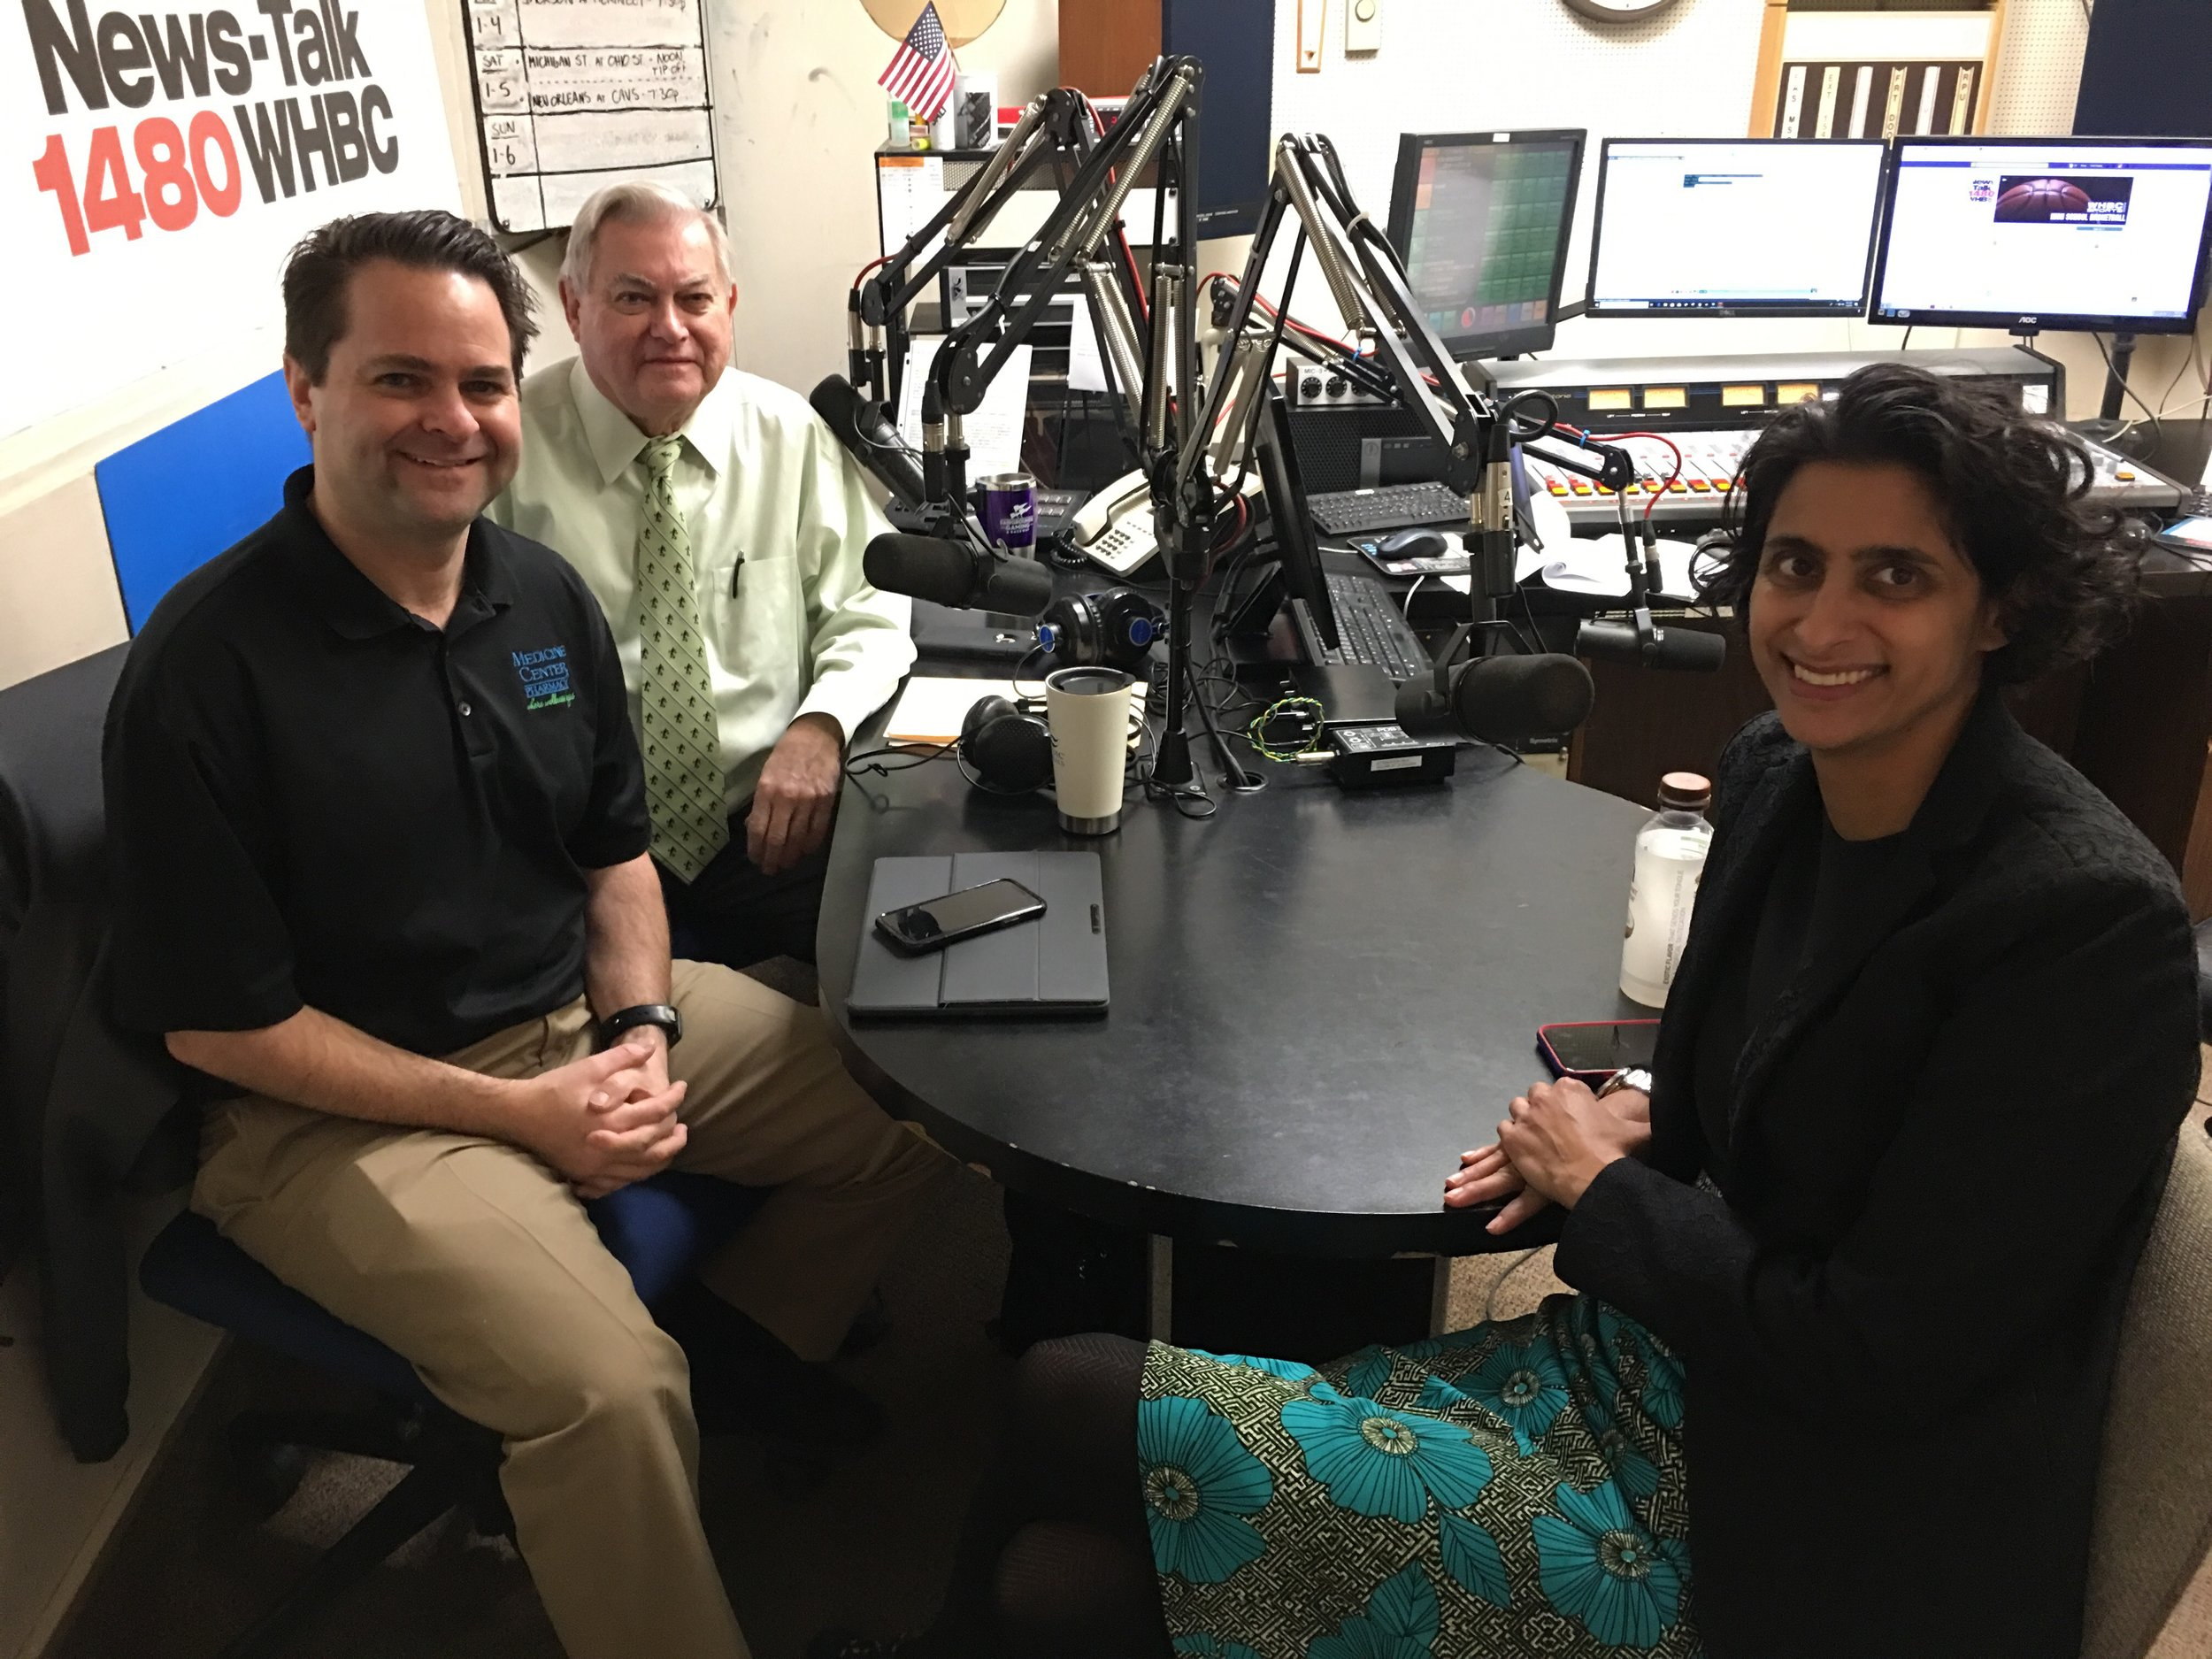 Dr. Sabrina Shilad joins the Health Matters program to talk about breast health with pharmacists, Brad White and Paul White.